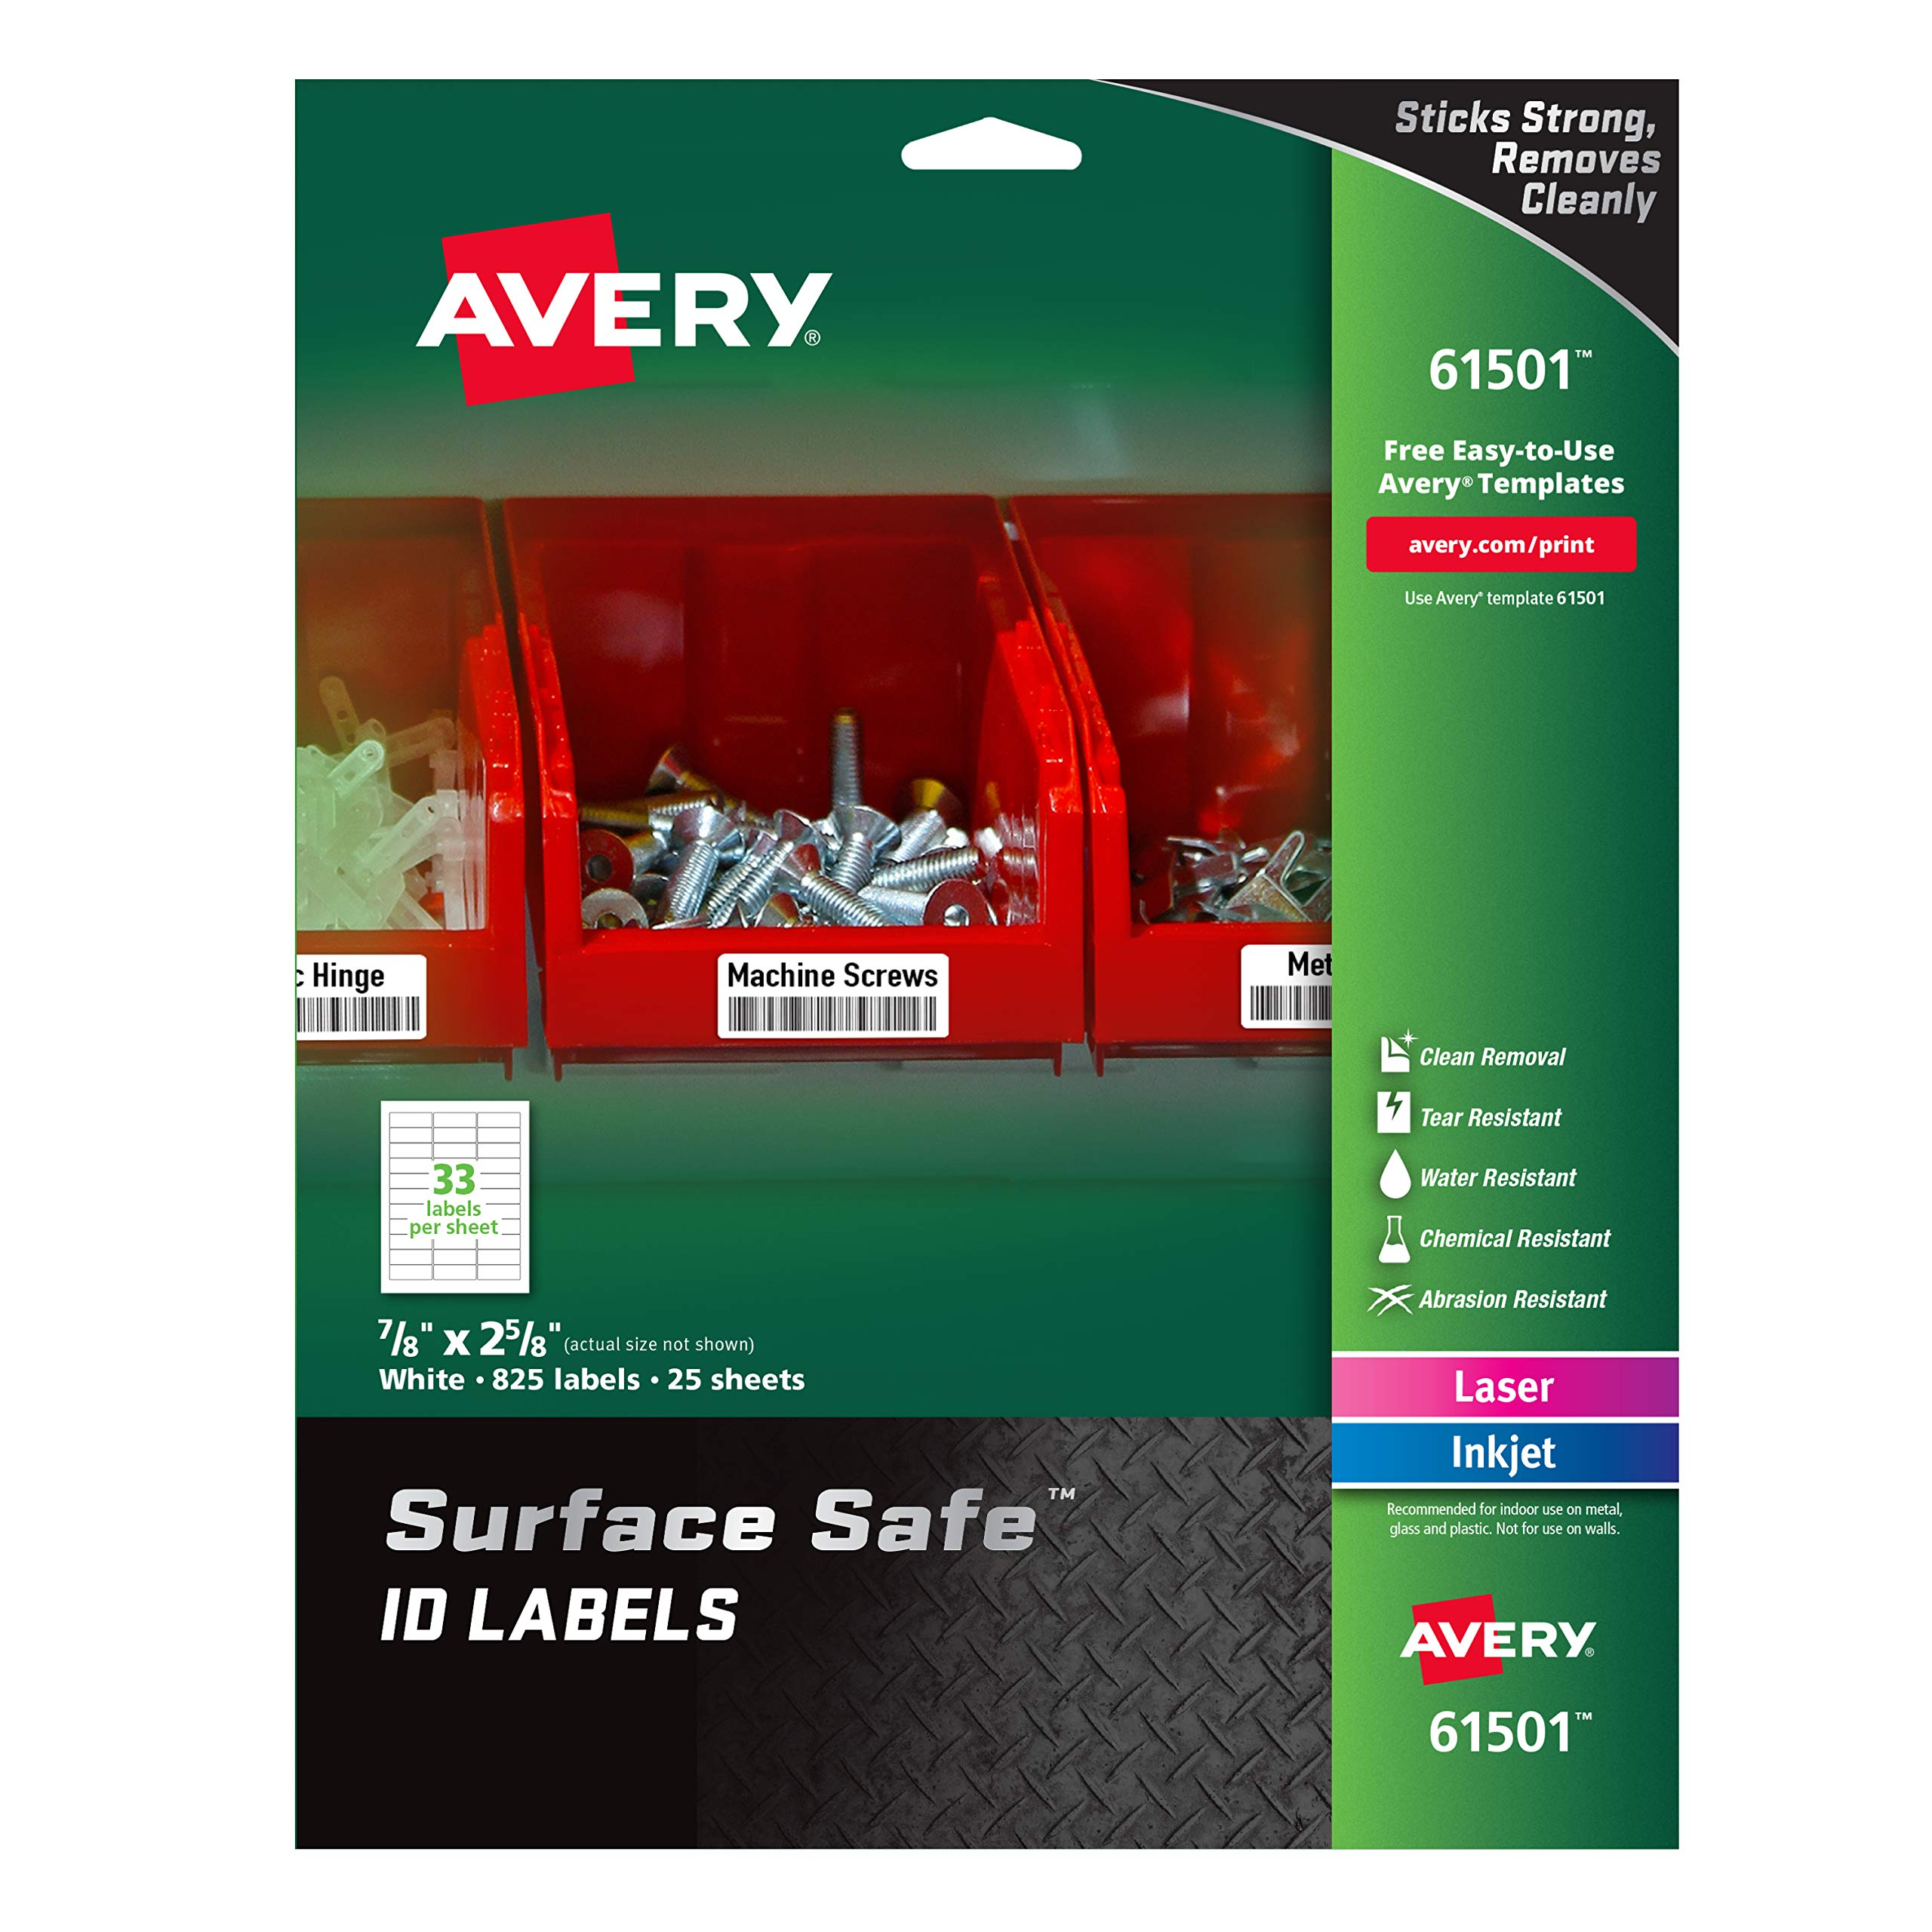 """Avery Surface Safe Durable ID Labels, Removable Adhesive, Water Resistant, 7/8"""" x 2-5/8"""", 825 Labels (61501)"""